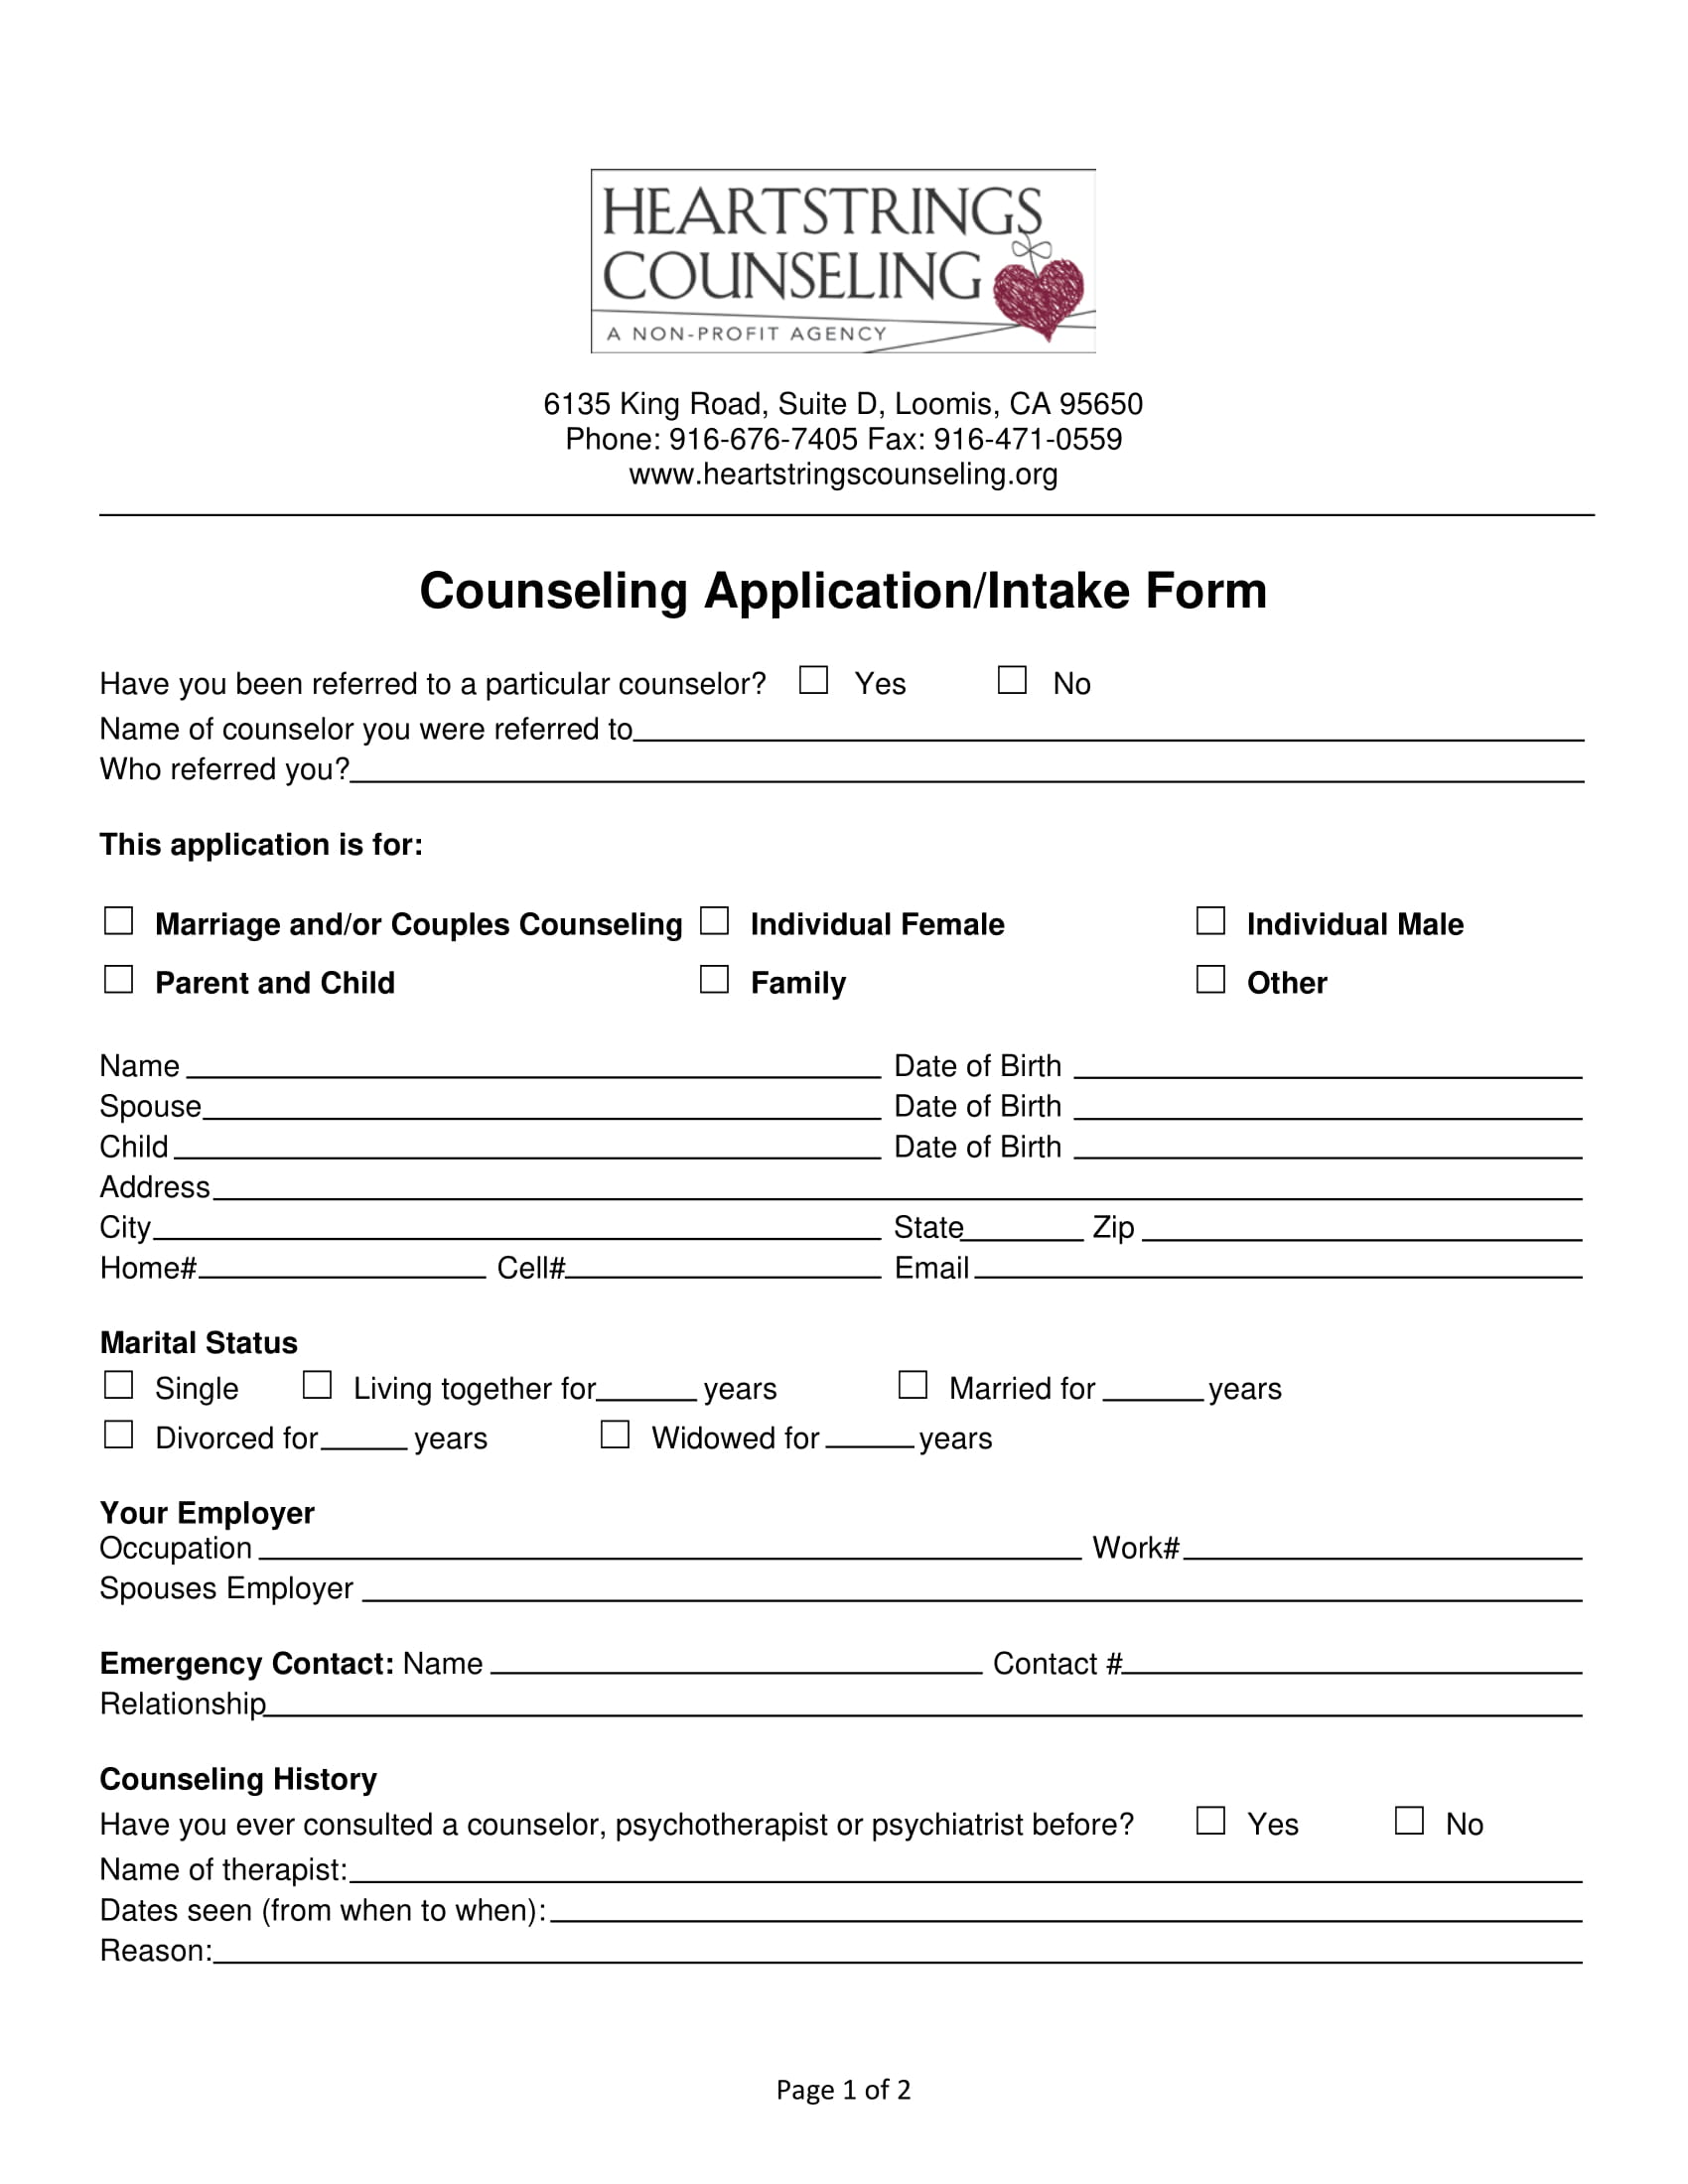 counseling application intake form 1